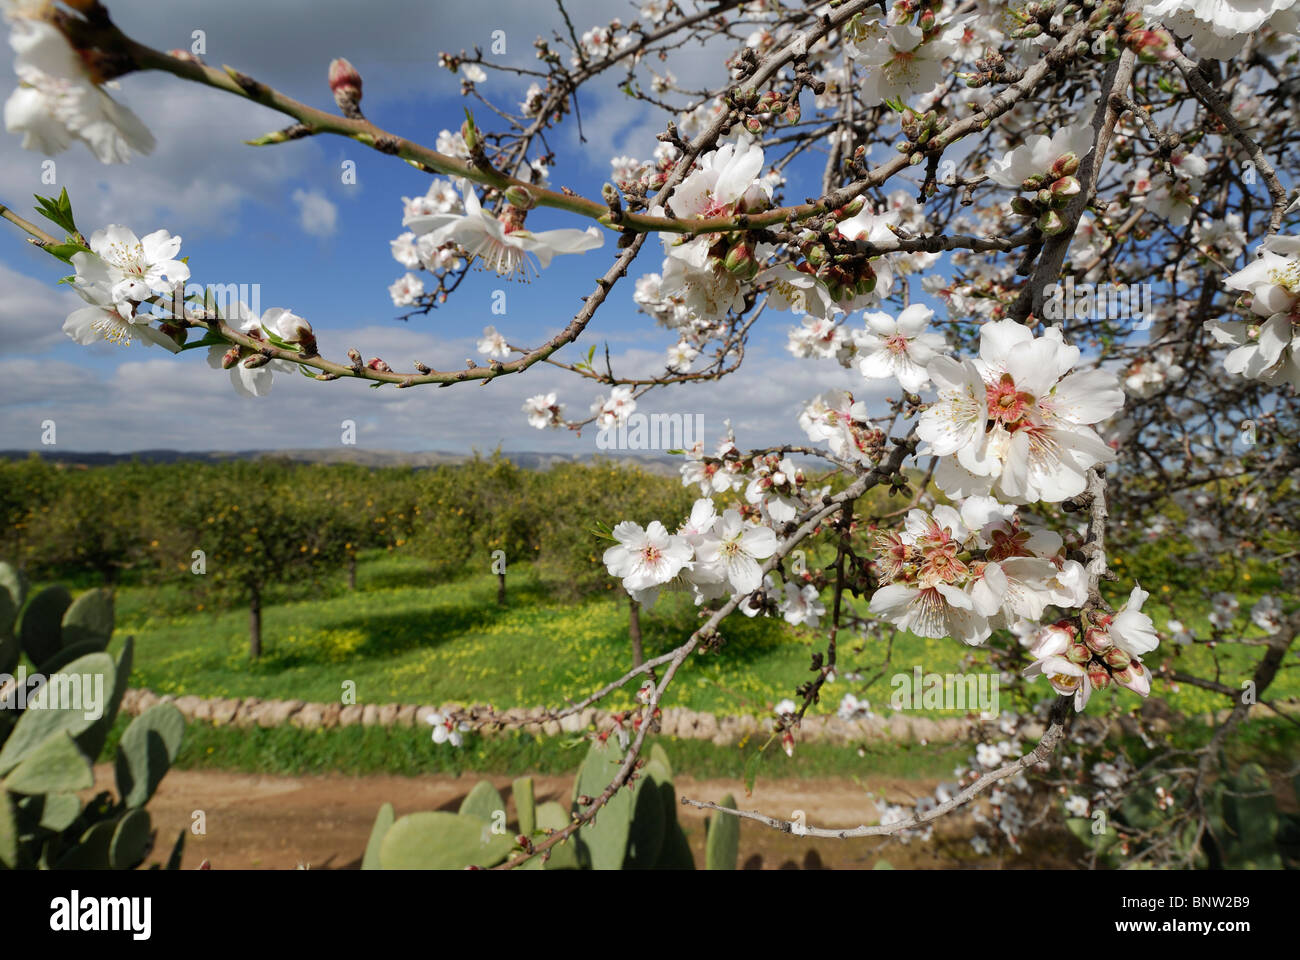 Avola. Sicily. Italy. Almond blossom & lemon groves. - Stock Image